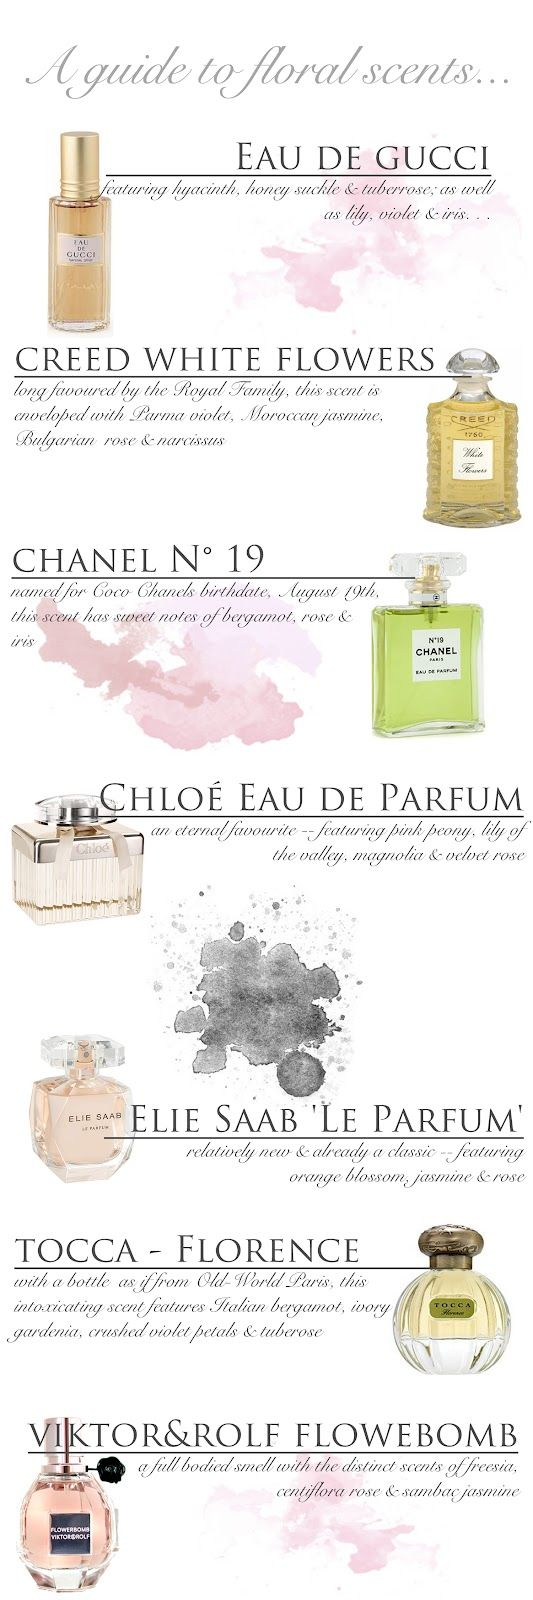 Amour Love Perfume Guide Floral Scents Beauty And Fun